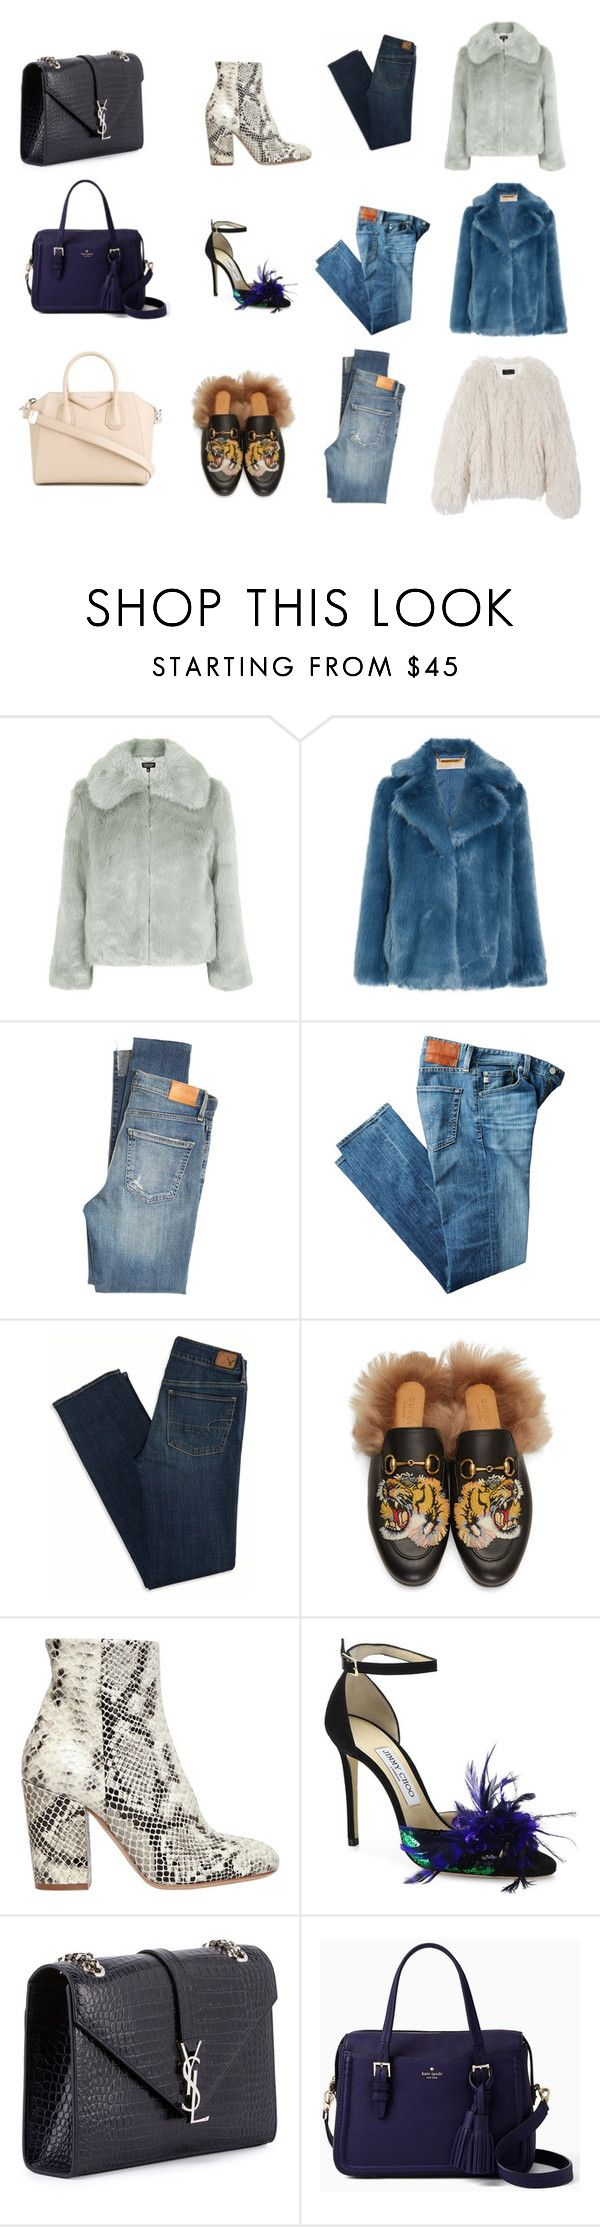 """""""ootd's"""" by skybluepatricia on Polyvore featuring Topshop, MICHAEL Michael Kors, Nili Lotan, Citizens of Humanity, AG Adriano Goldschmied, American Eagle Outfitters, Gucci, Strategia, Jimmy Choo and Yves Saint Laurent"""